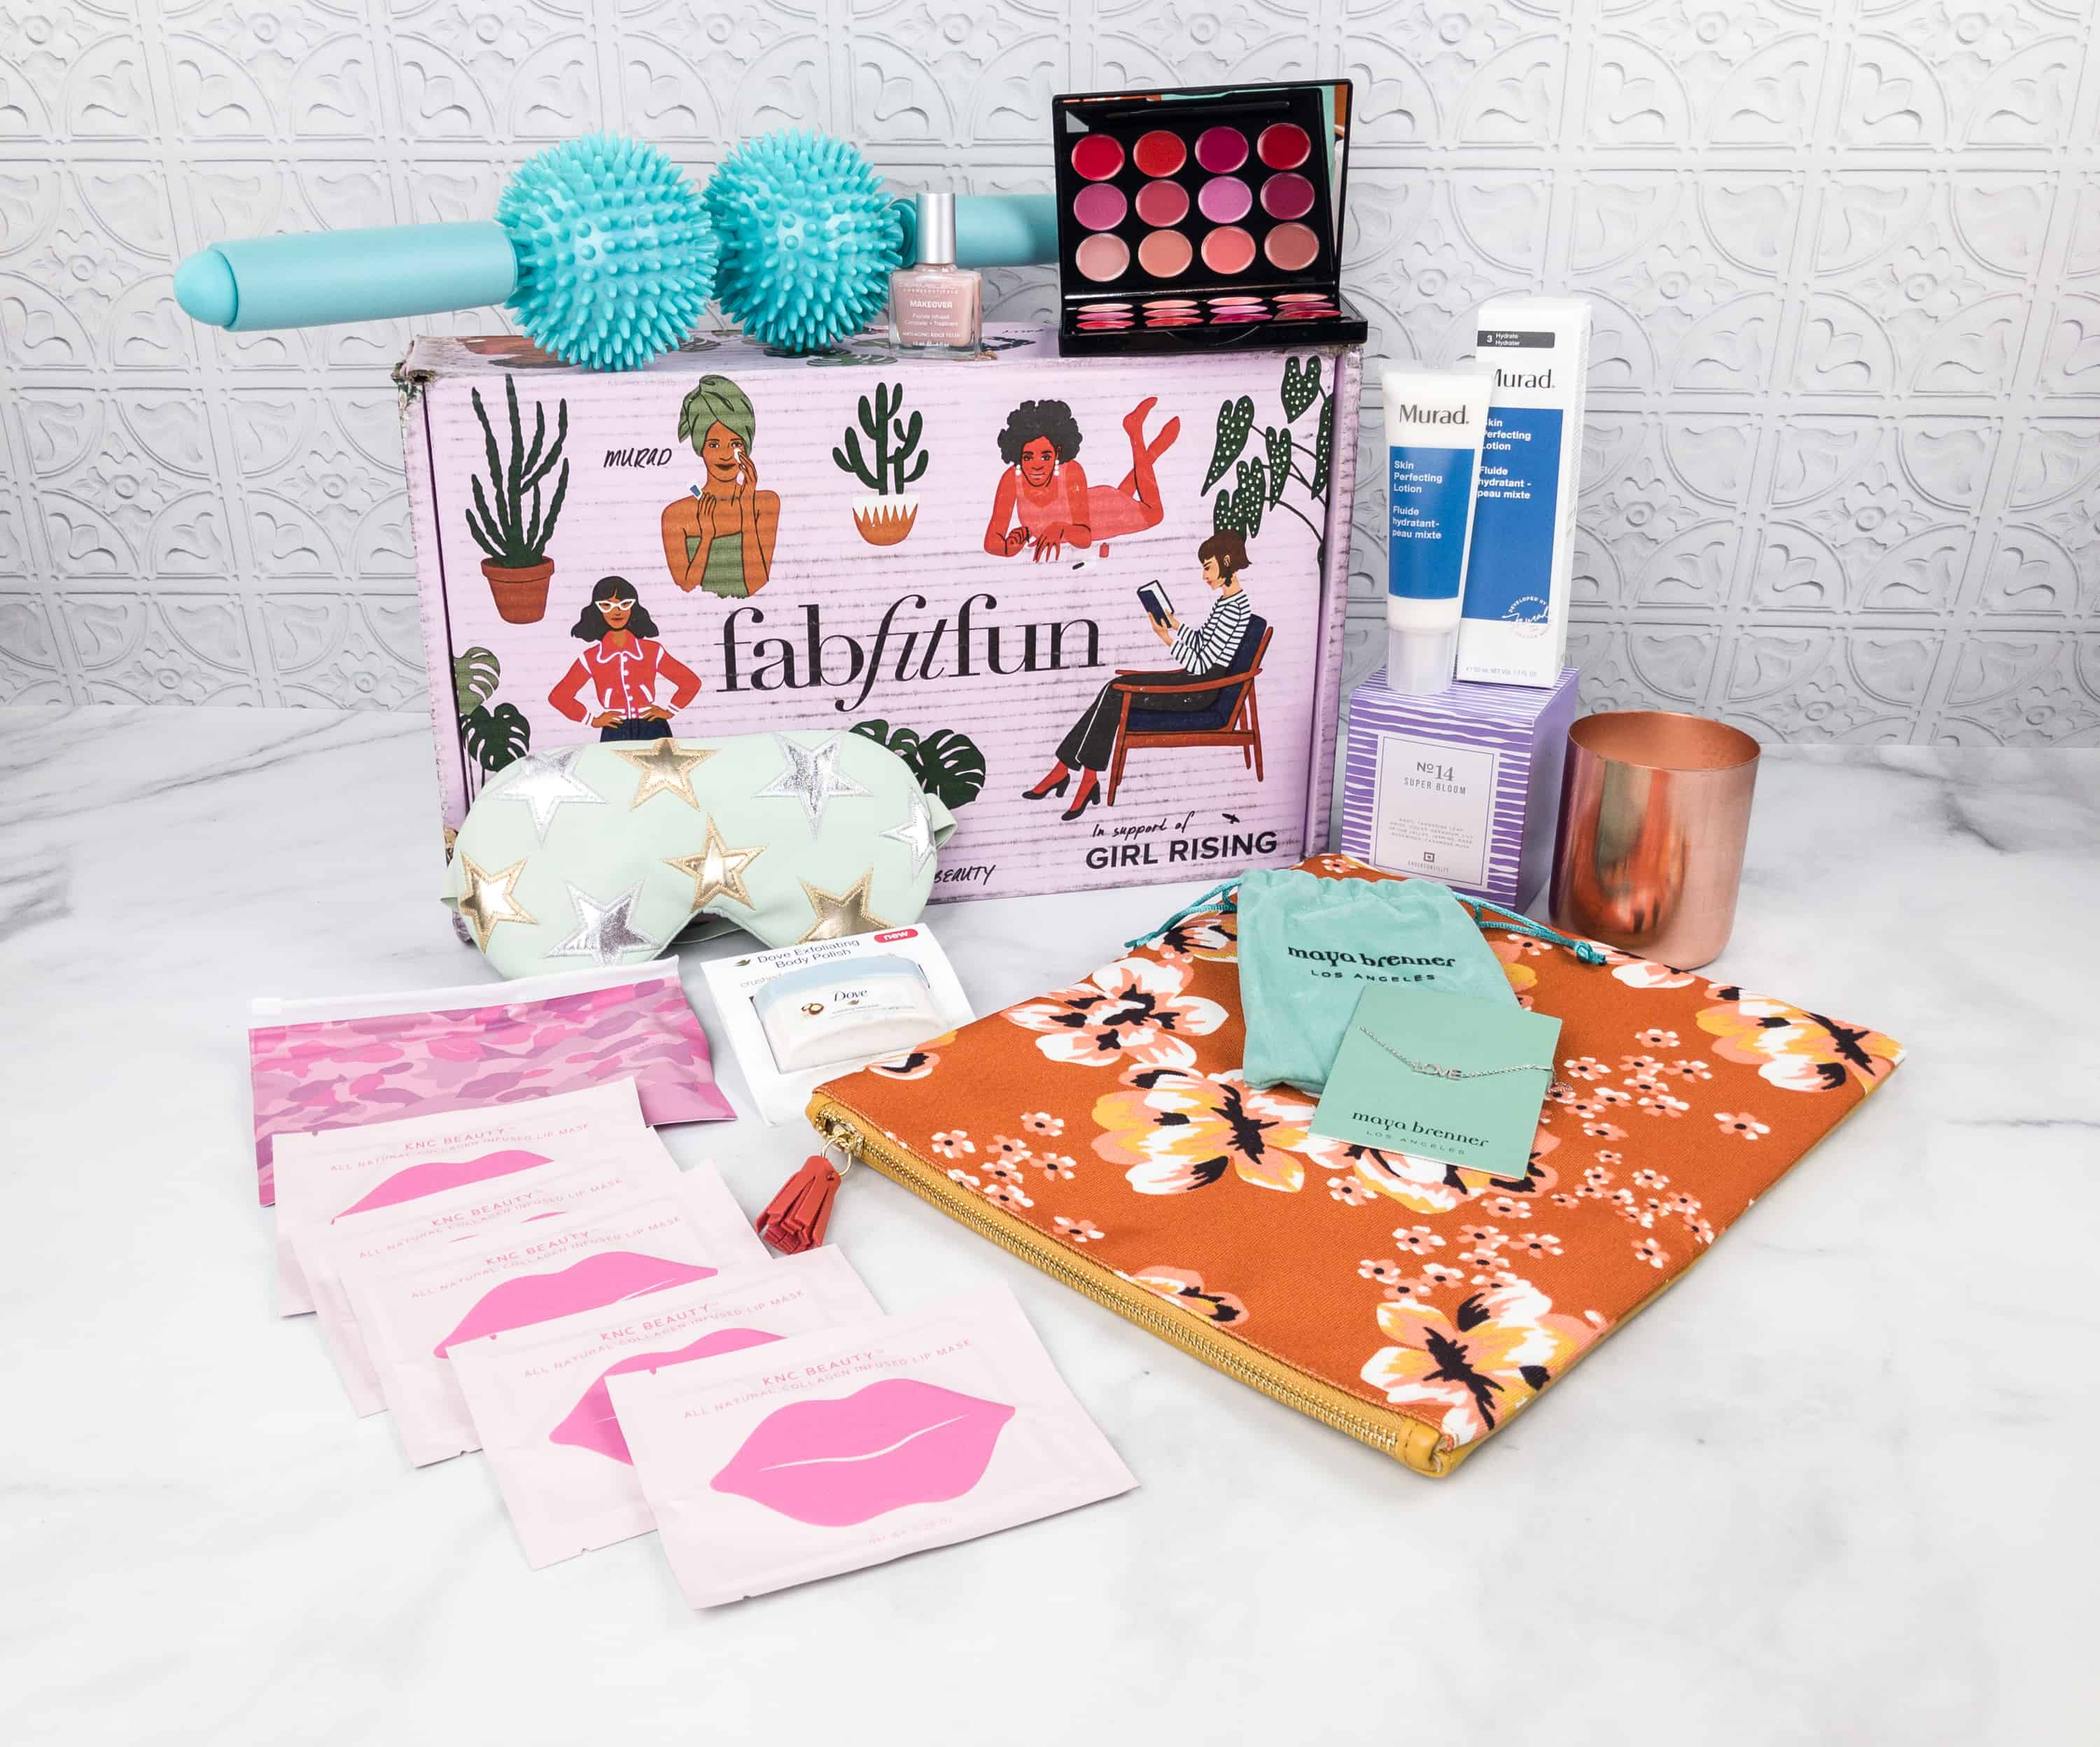 FabFitFun Spring 2018 Box Review + $10 Coupon